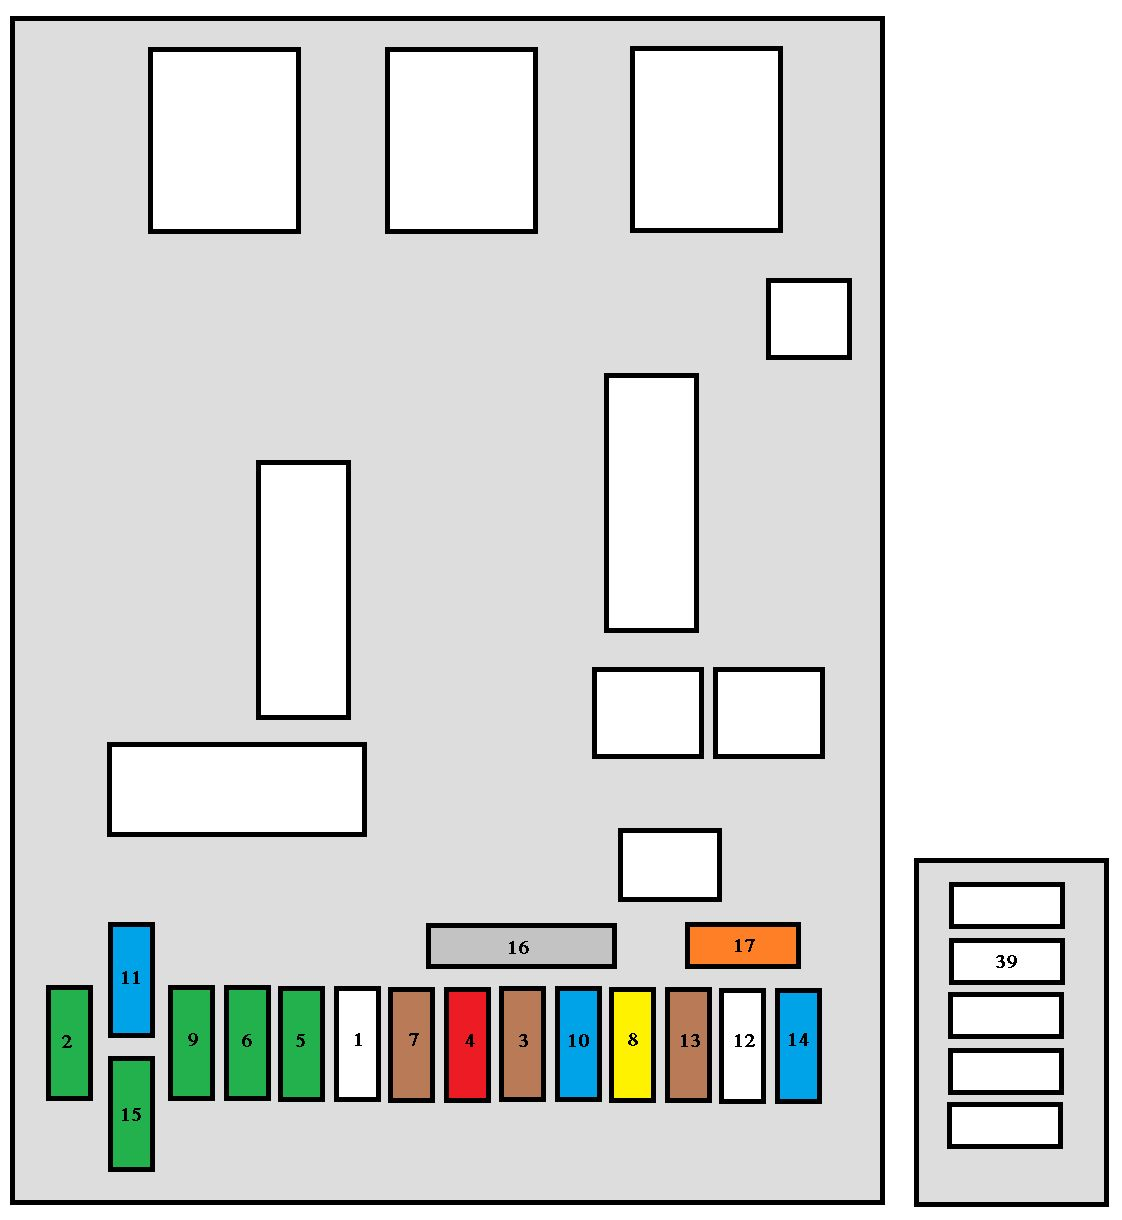 peugeot 307 sw  2005  - fuse box diagram